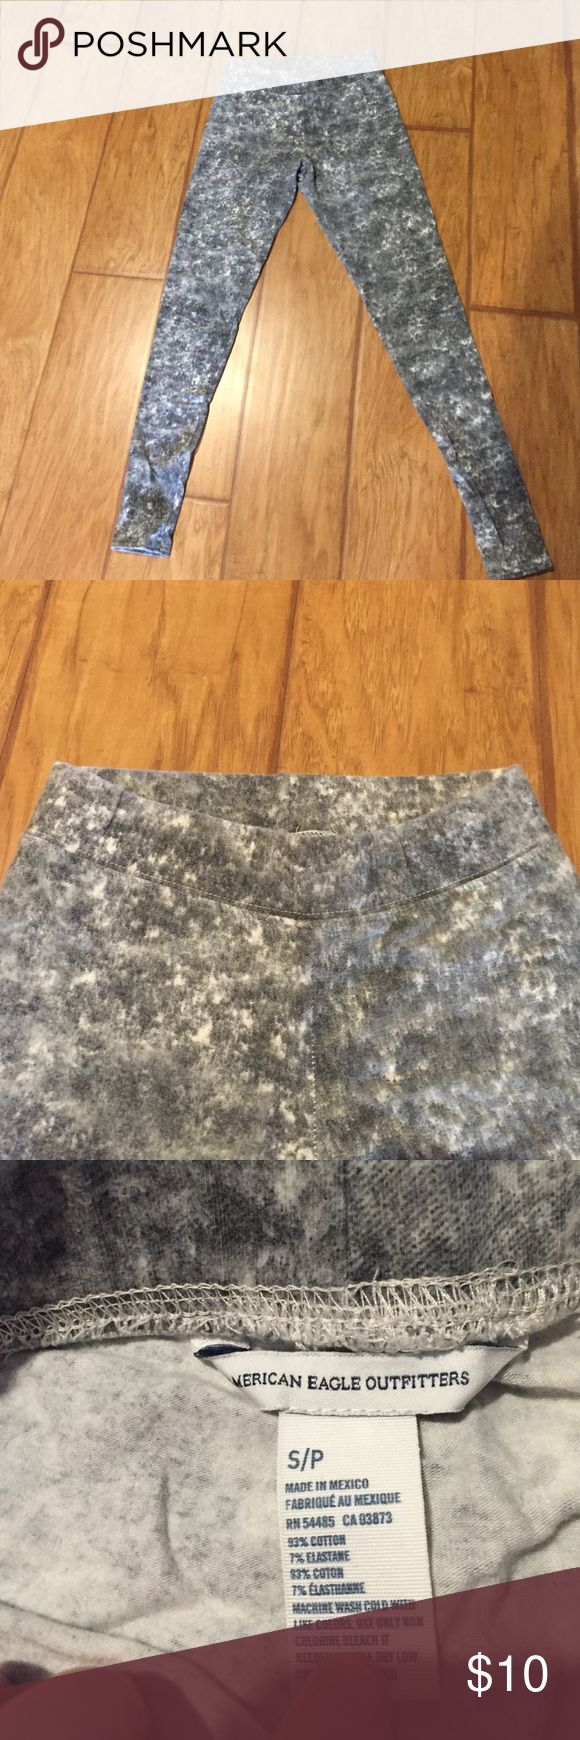 American eagle printed leggings Printed leggings from American eagle. Super soft, stretchy and comfy! Worn once. Can be worn with oversized tops or as workout leggings! American Eagle Outfitters Pants